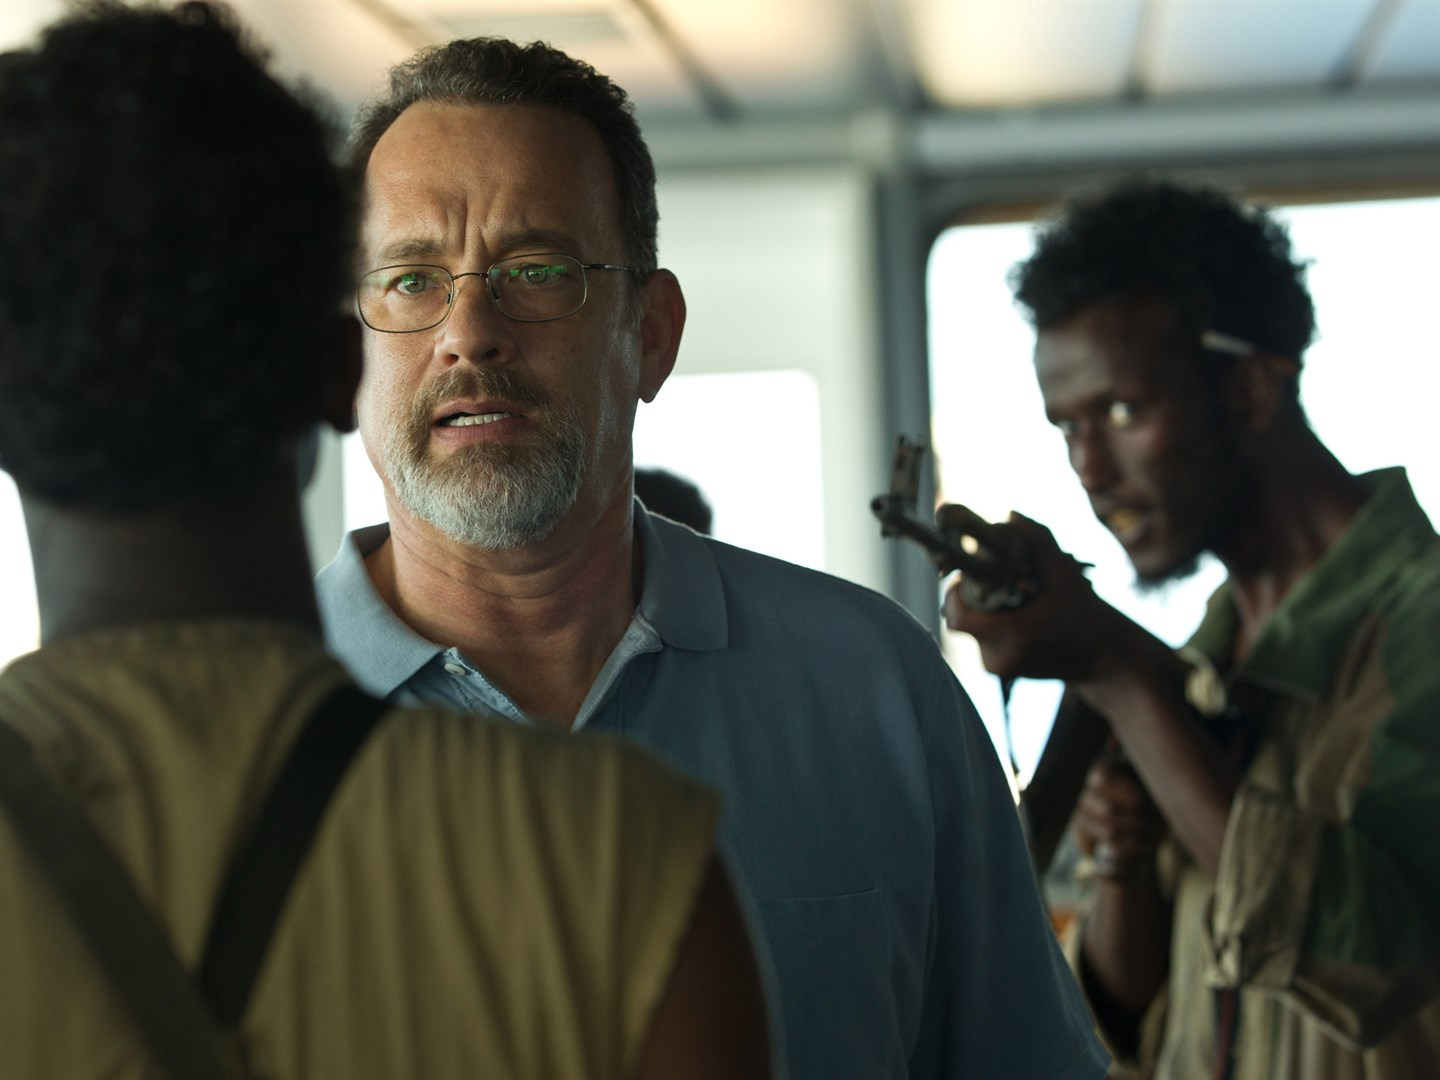 captain phillips full movie free download in english